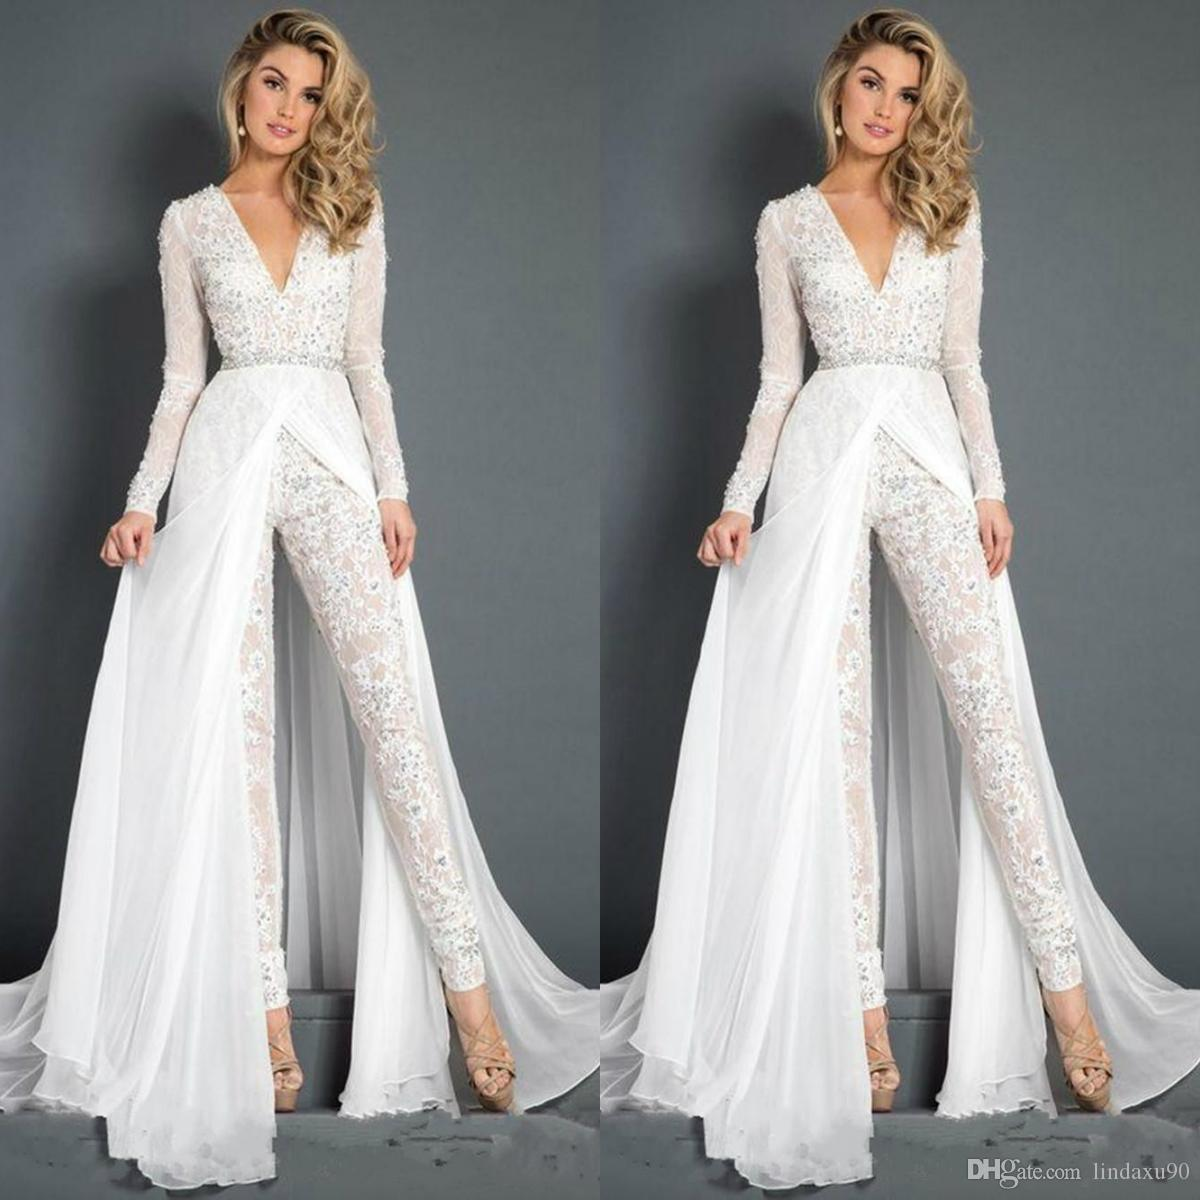 33e6b3fcf14c White Jumpsuits Prom Dresses Beaded Lace Deep V Neck Overskirts Formal  Evening Party Gowns Cheap Long Sleeve Beach Special Occasion Pants Camo Prom  Dress ...